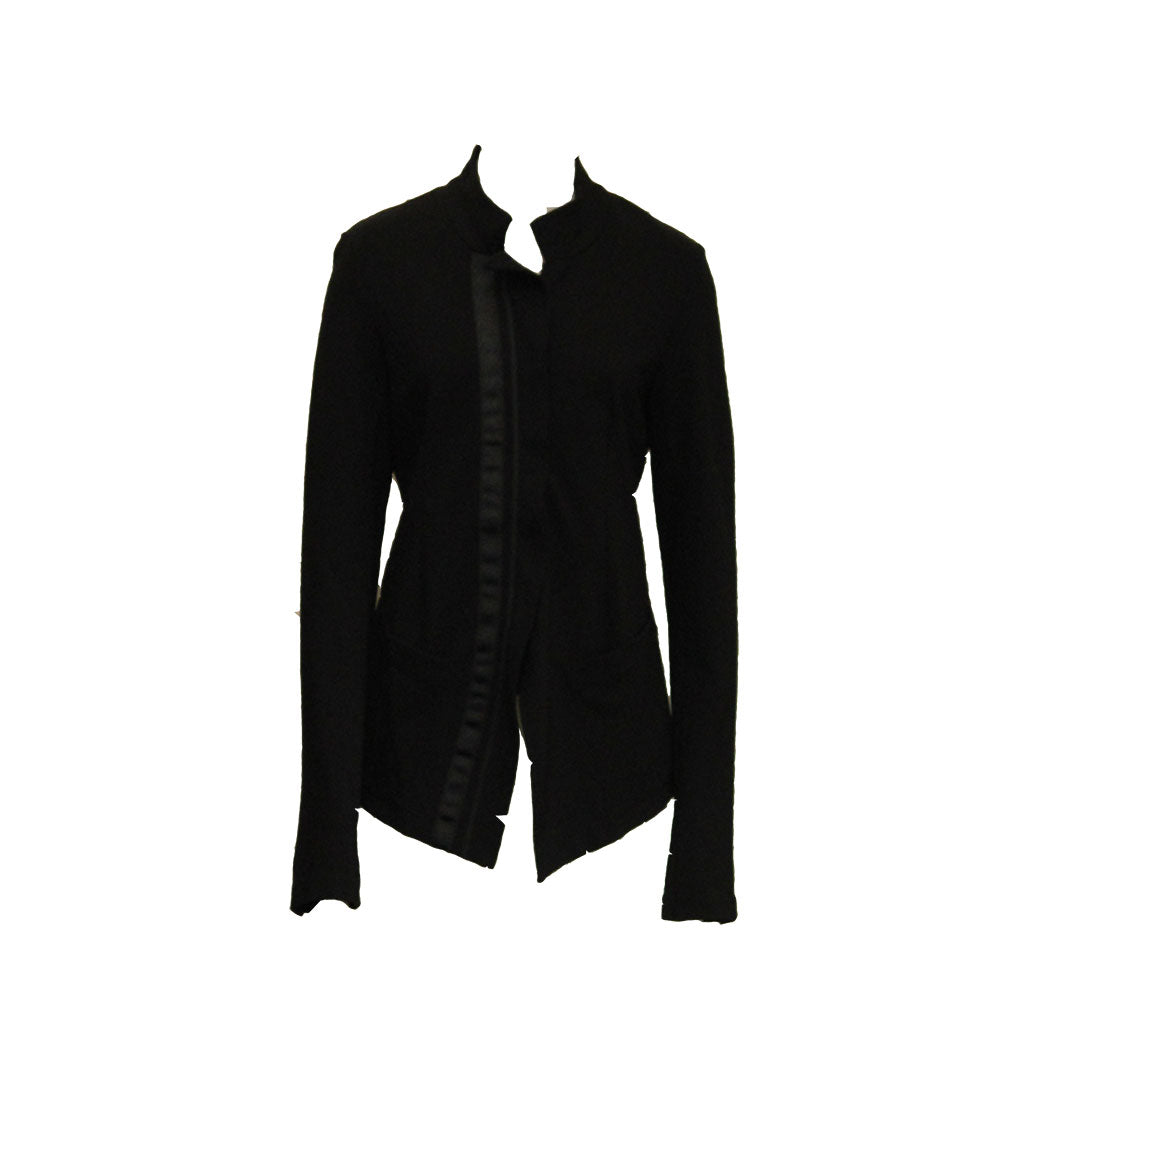 HEAVY JERSEY BLAZER - RUNDHOLZ BLACK LABEL